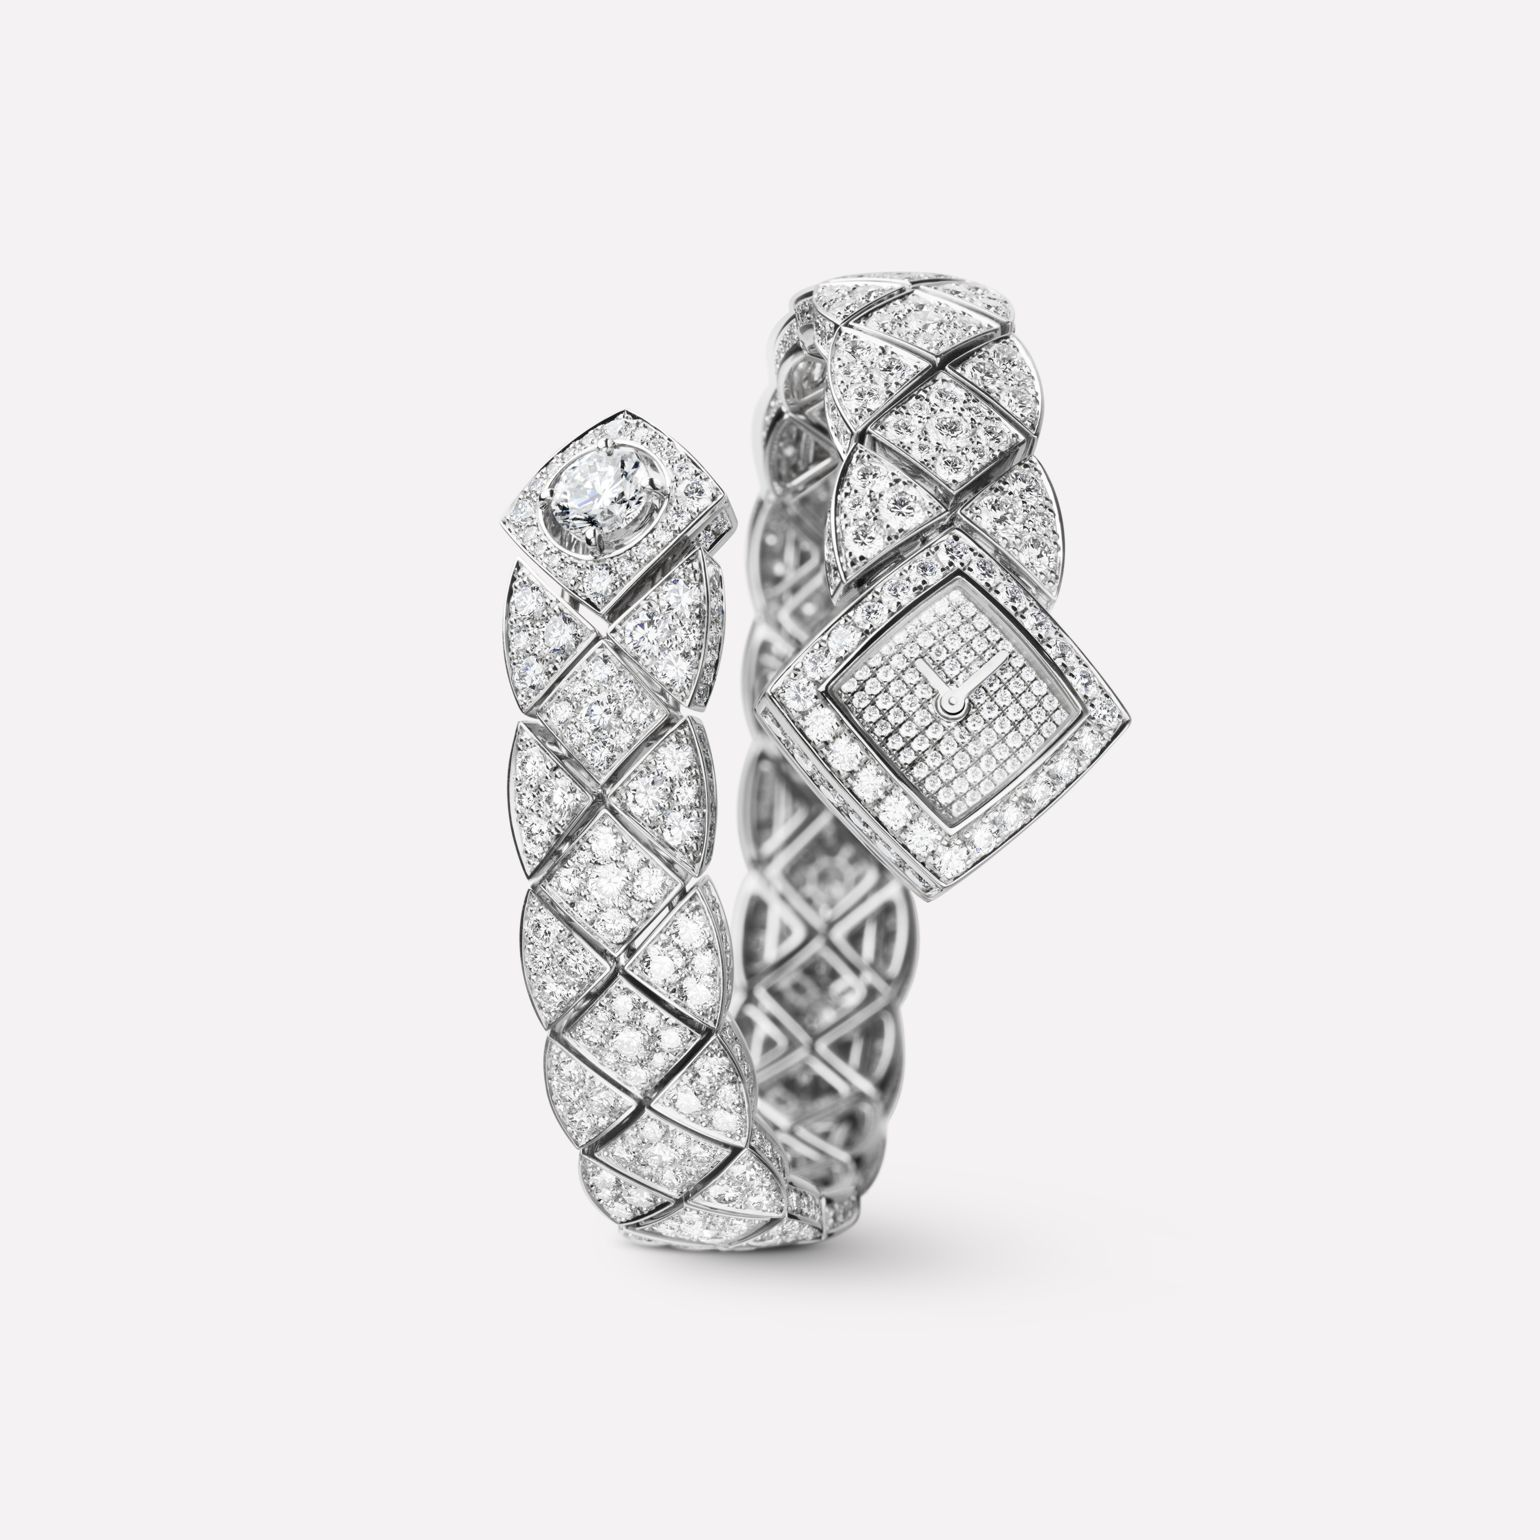 Matelassée Jewellery Watch Matelassée motif in 18K white gold, diamonds and central diamond